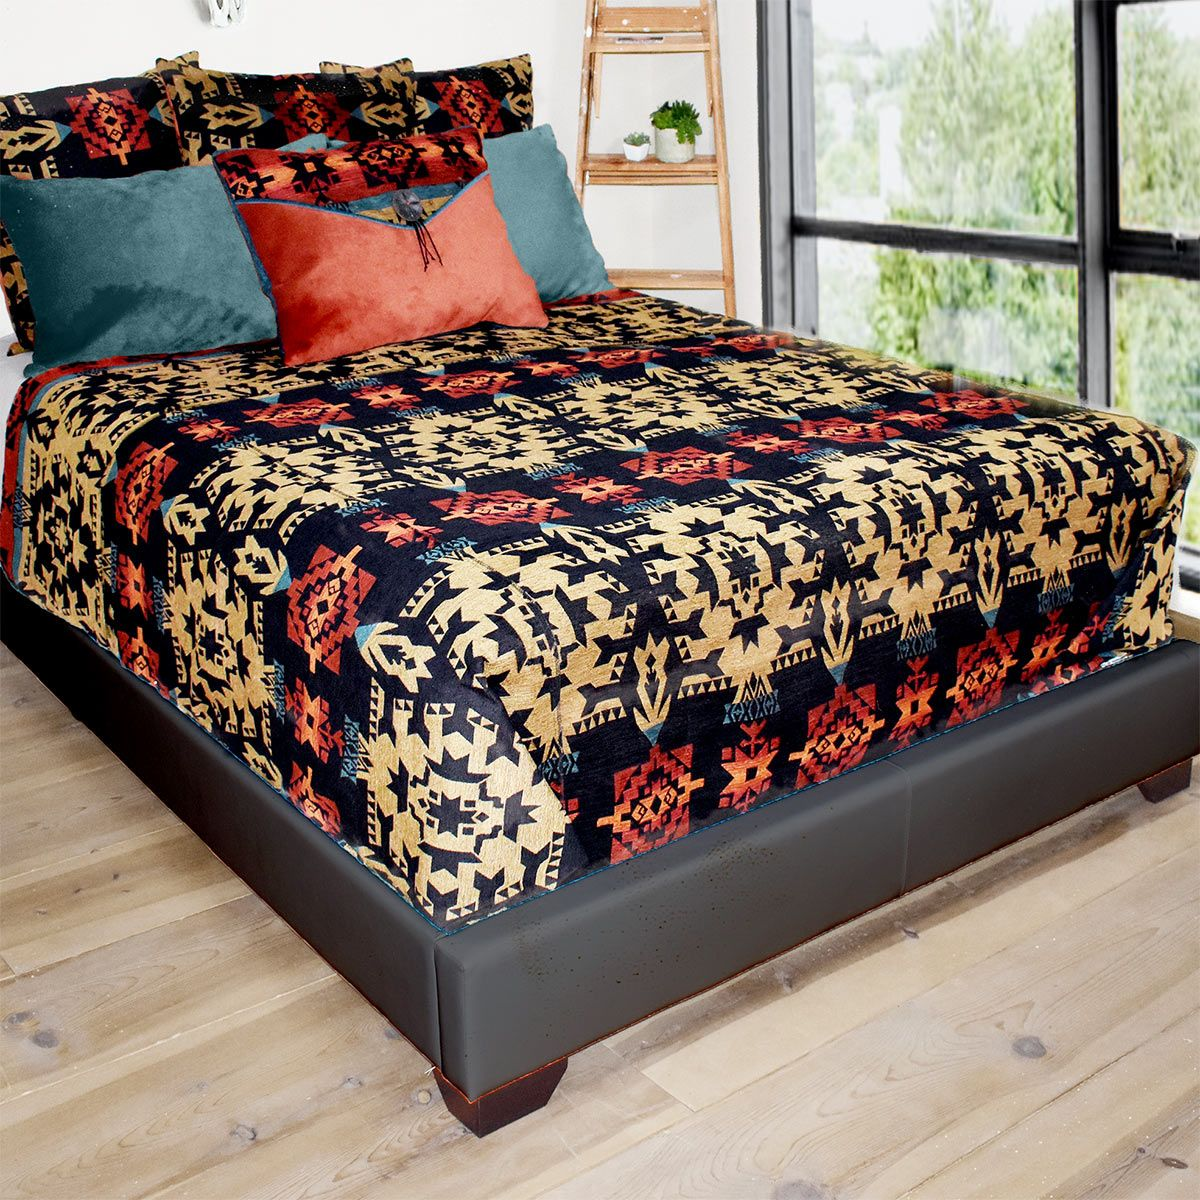 Adobe Sunset Coverlet - Queen